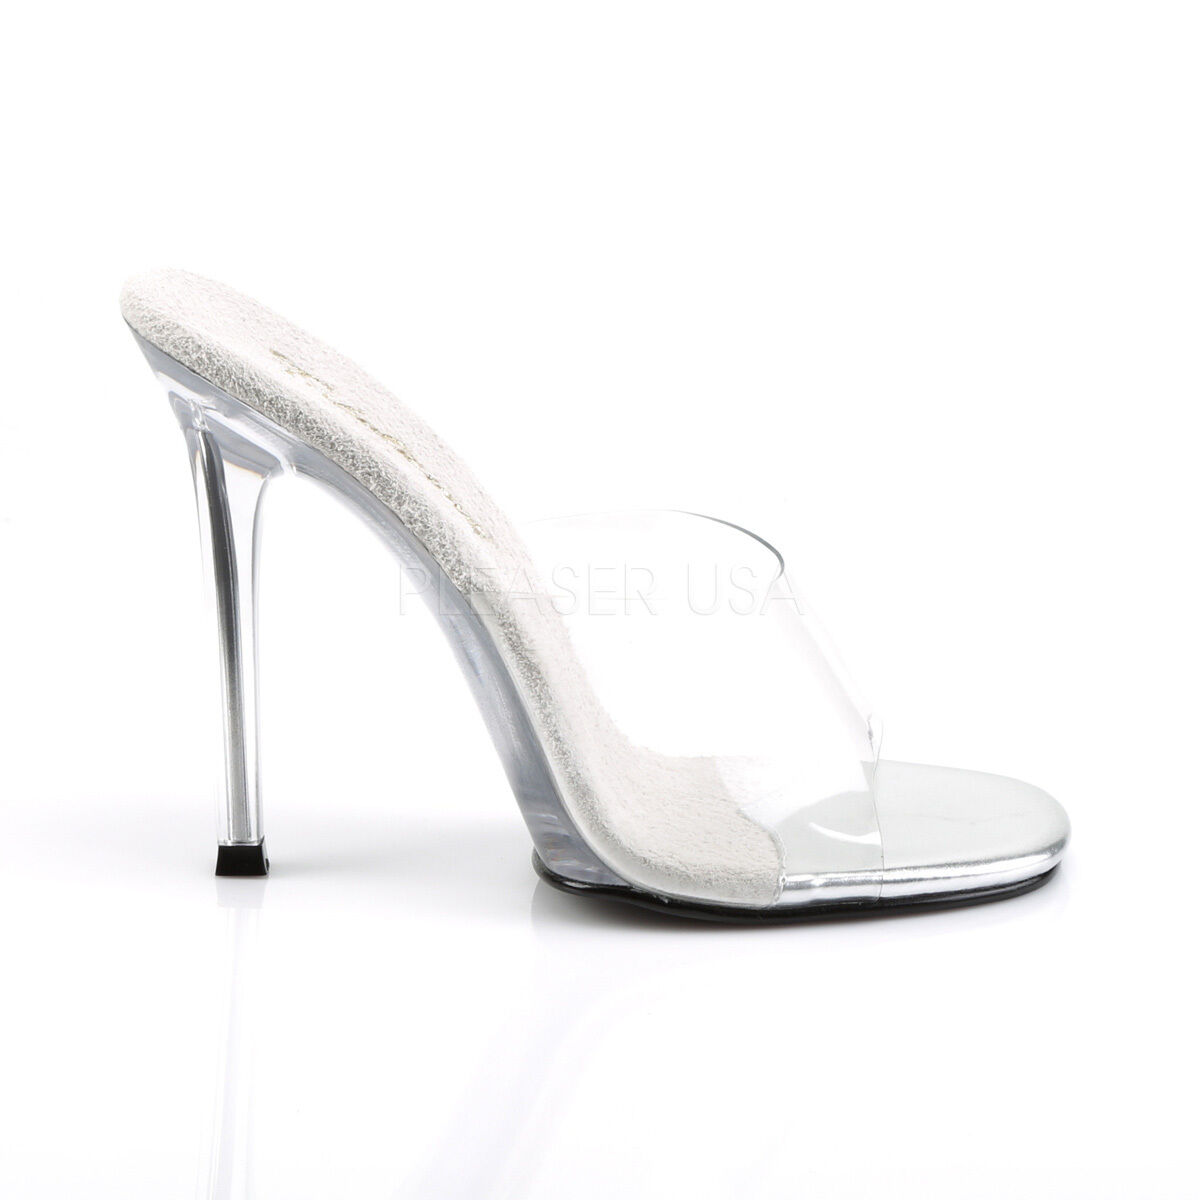 Fabulicius Slippers Gala 01 Clear Transparent Slippers Fabulicius Stiletto Heel Slide Sandals 99d70b